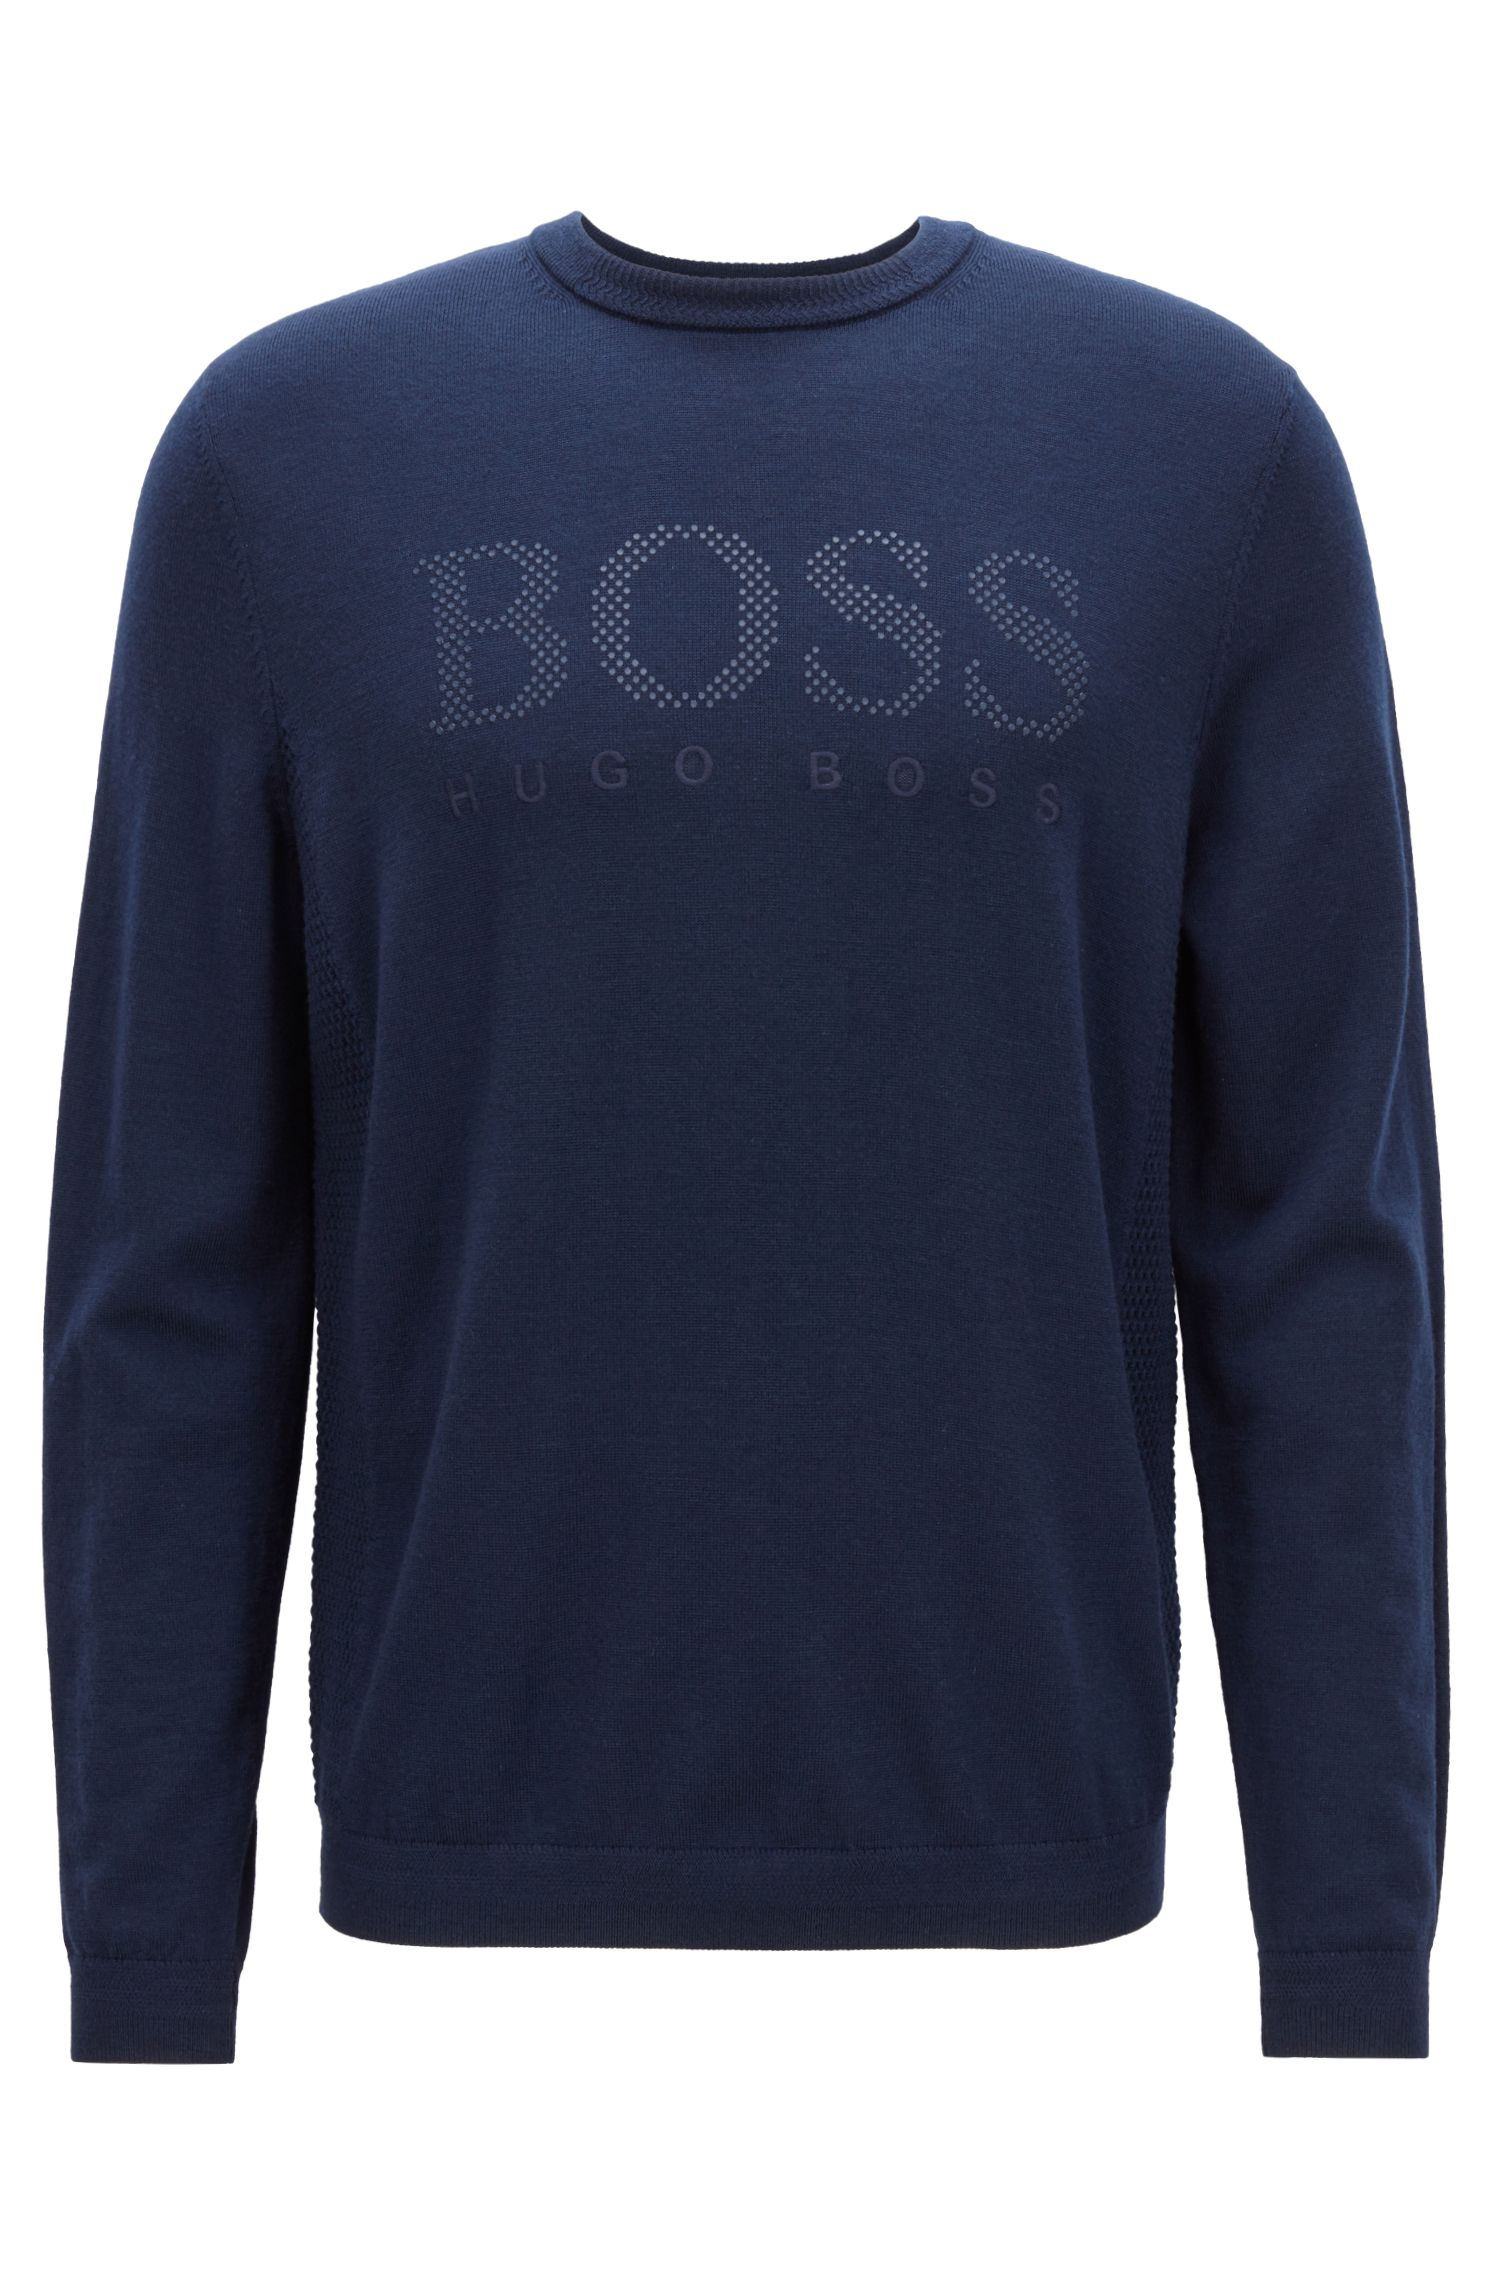 Crew-neck sweater in merino wool with knitted panels, Dark Blue